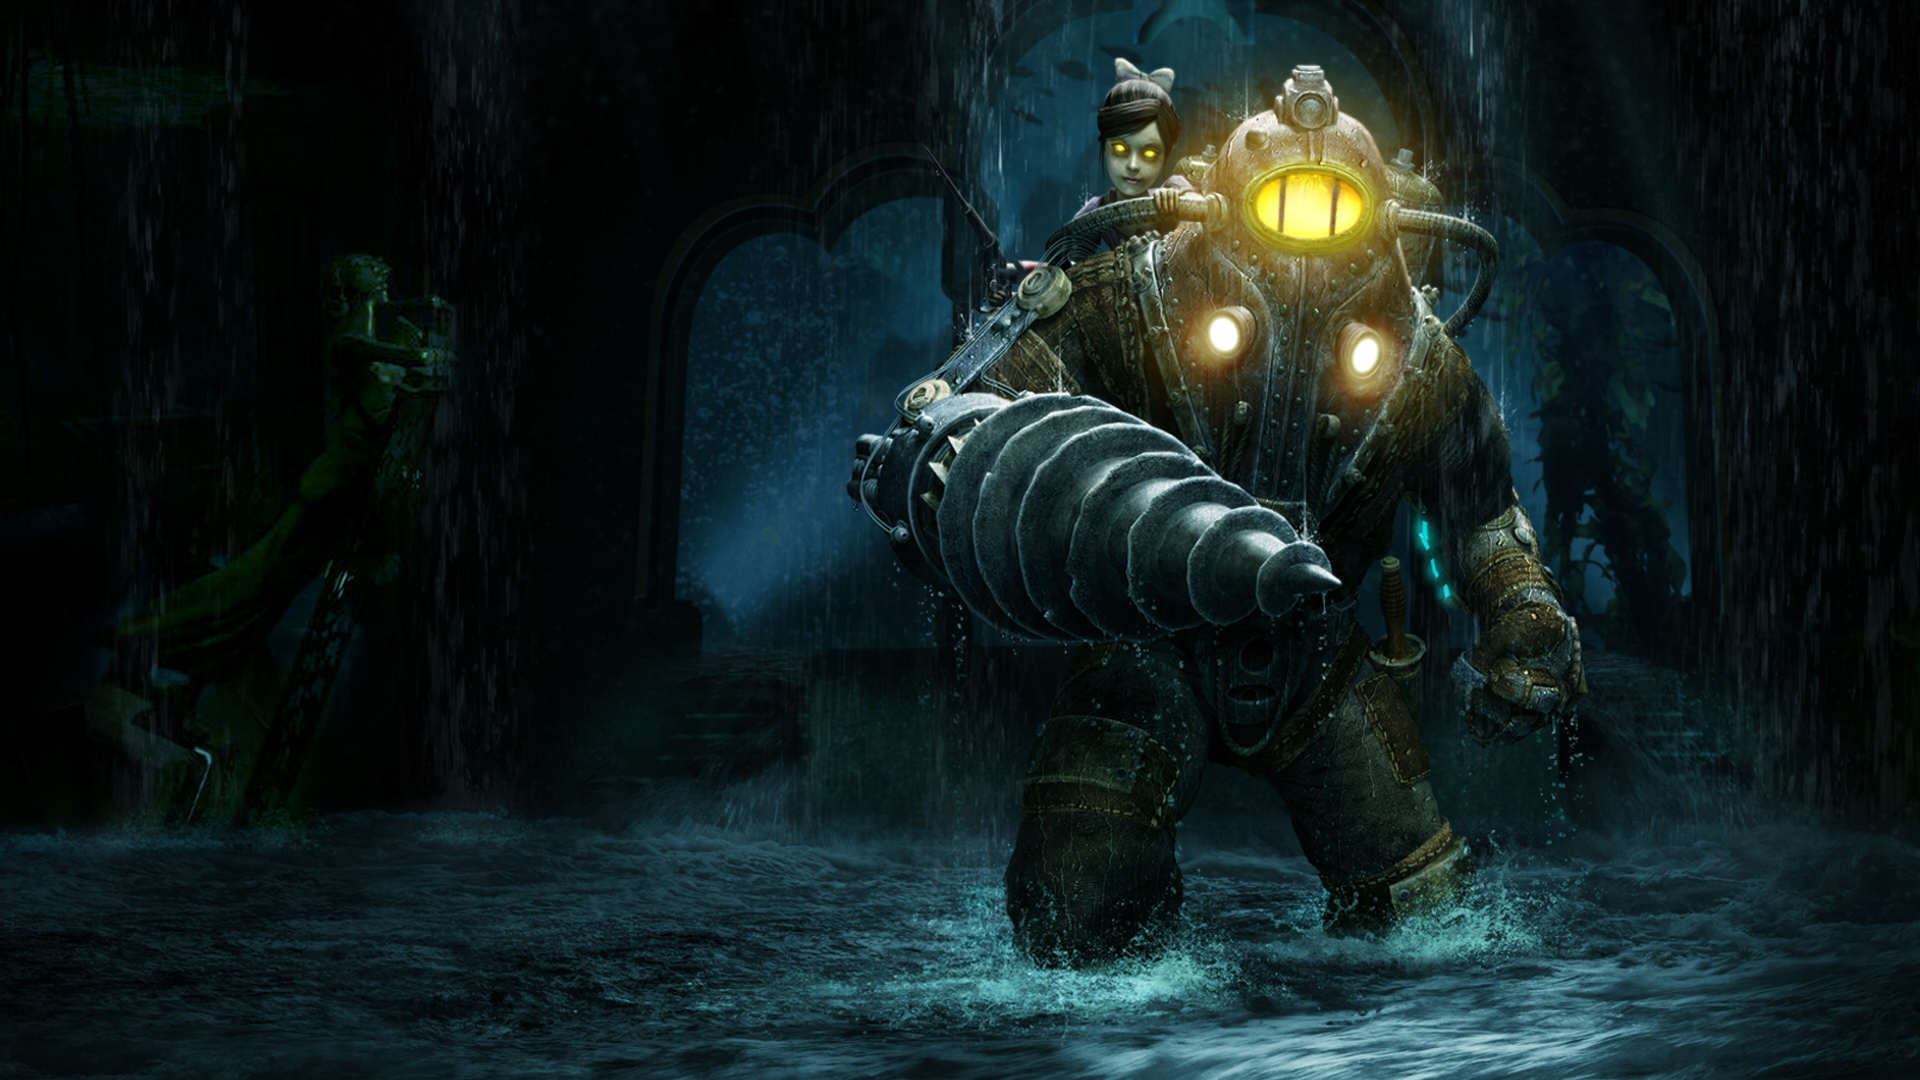 Bioshock: The Collection Box Art Potentially Leaked Online 2308703 1270723055 biosh 1